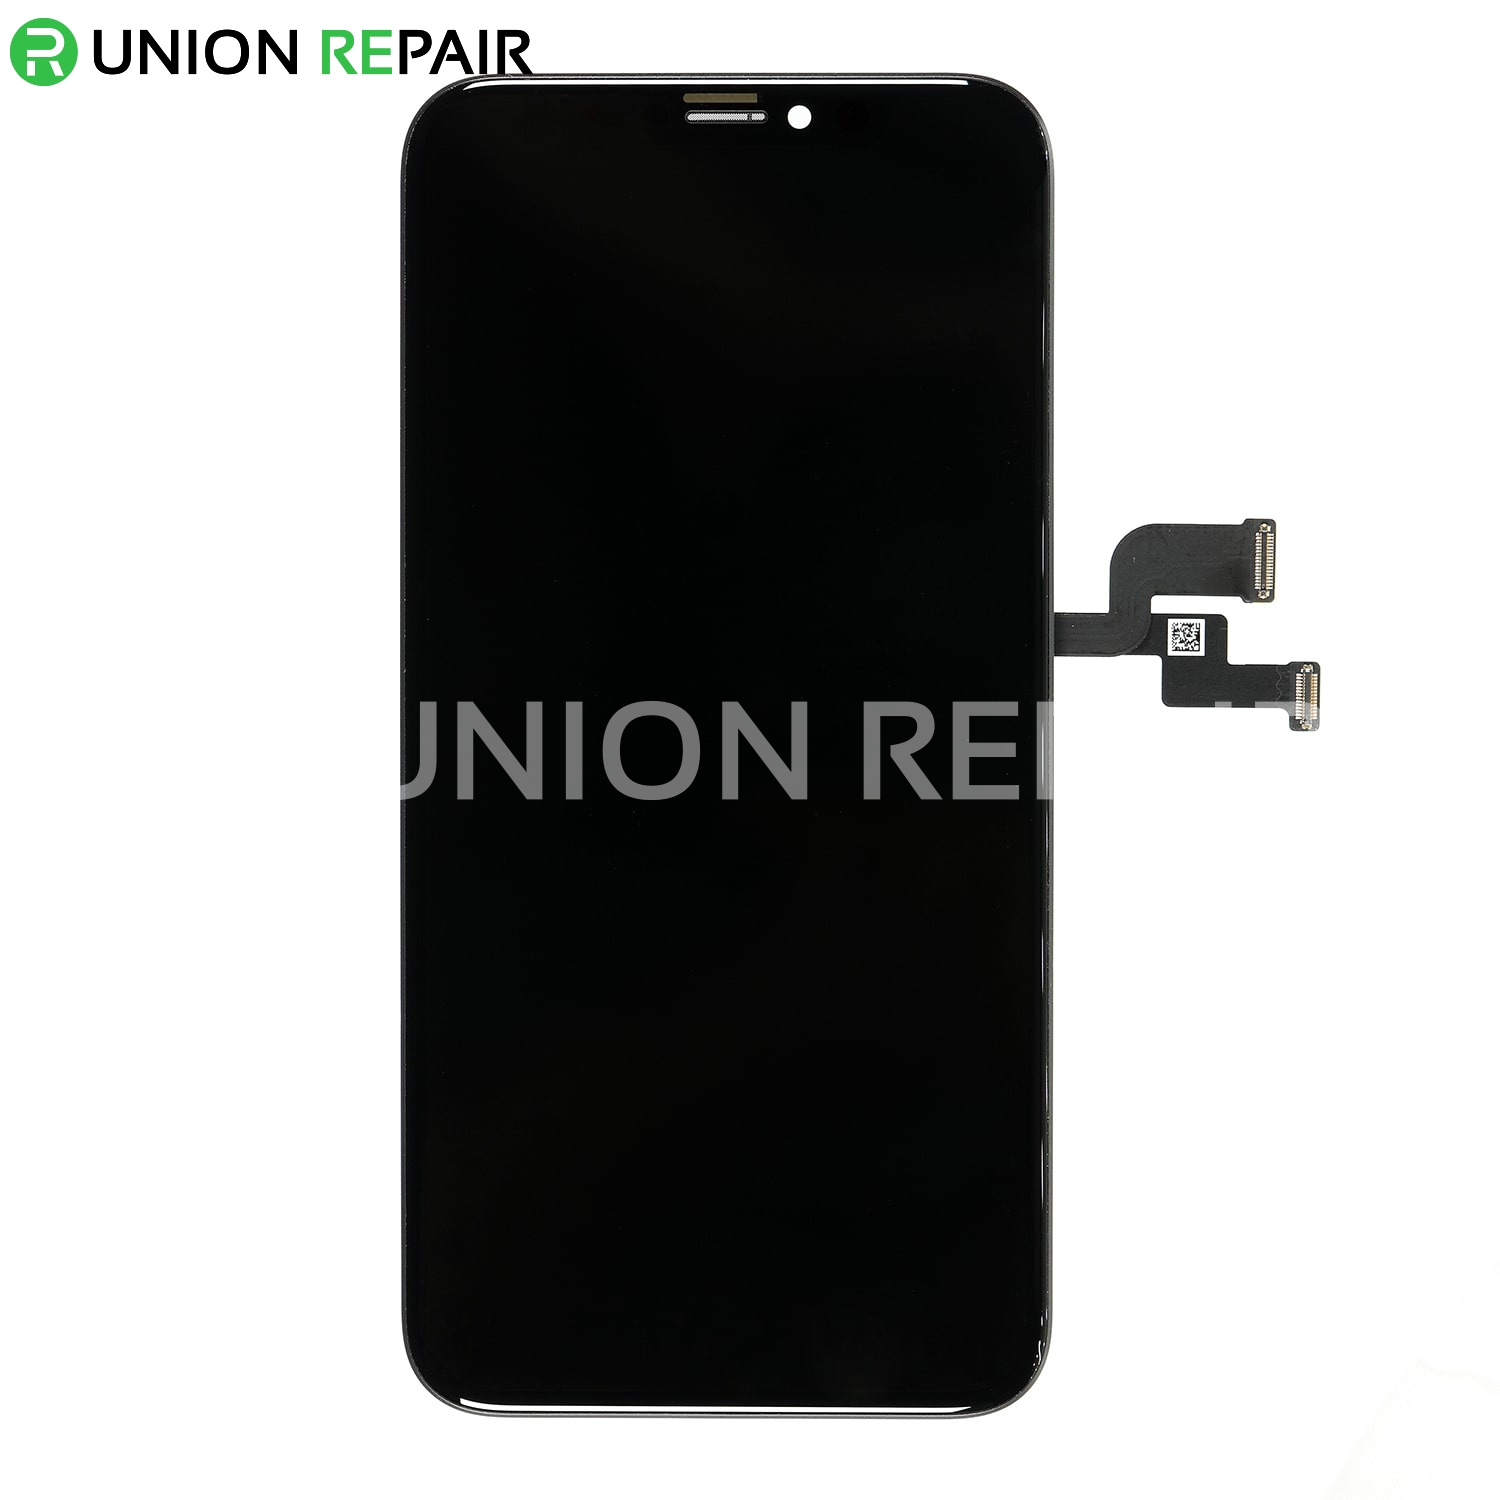 Replacement for iPhone Xs OLED Screen Digitizer Assembly - Black